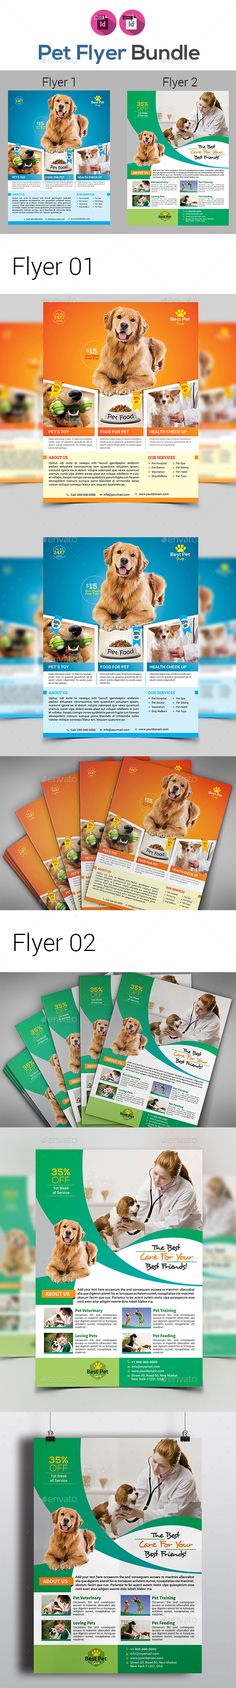 Pet Shop #Flyers Bundle - #Corporate Flyers Download here: https://graphicriver.net/item/pet-shop-flyers-bundle/19517575?ref=alena994